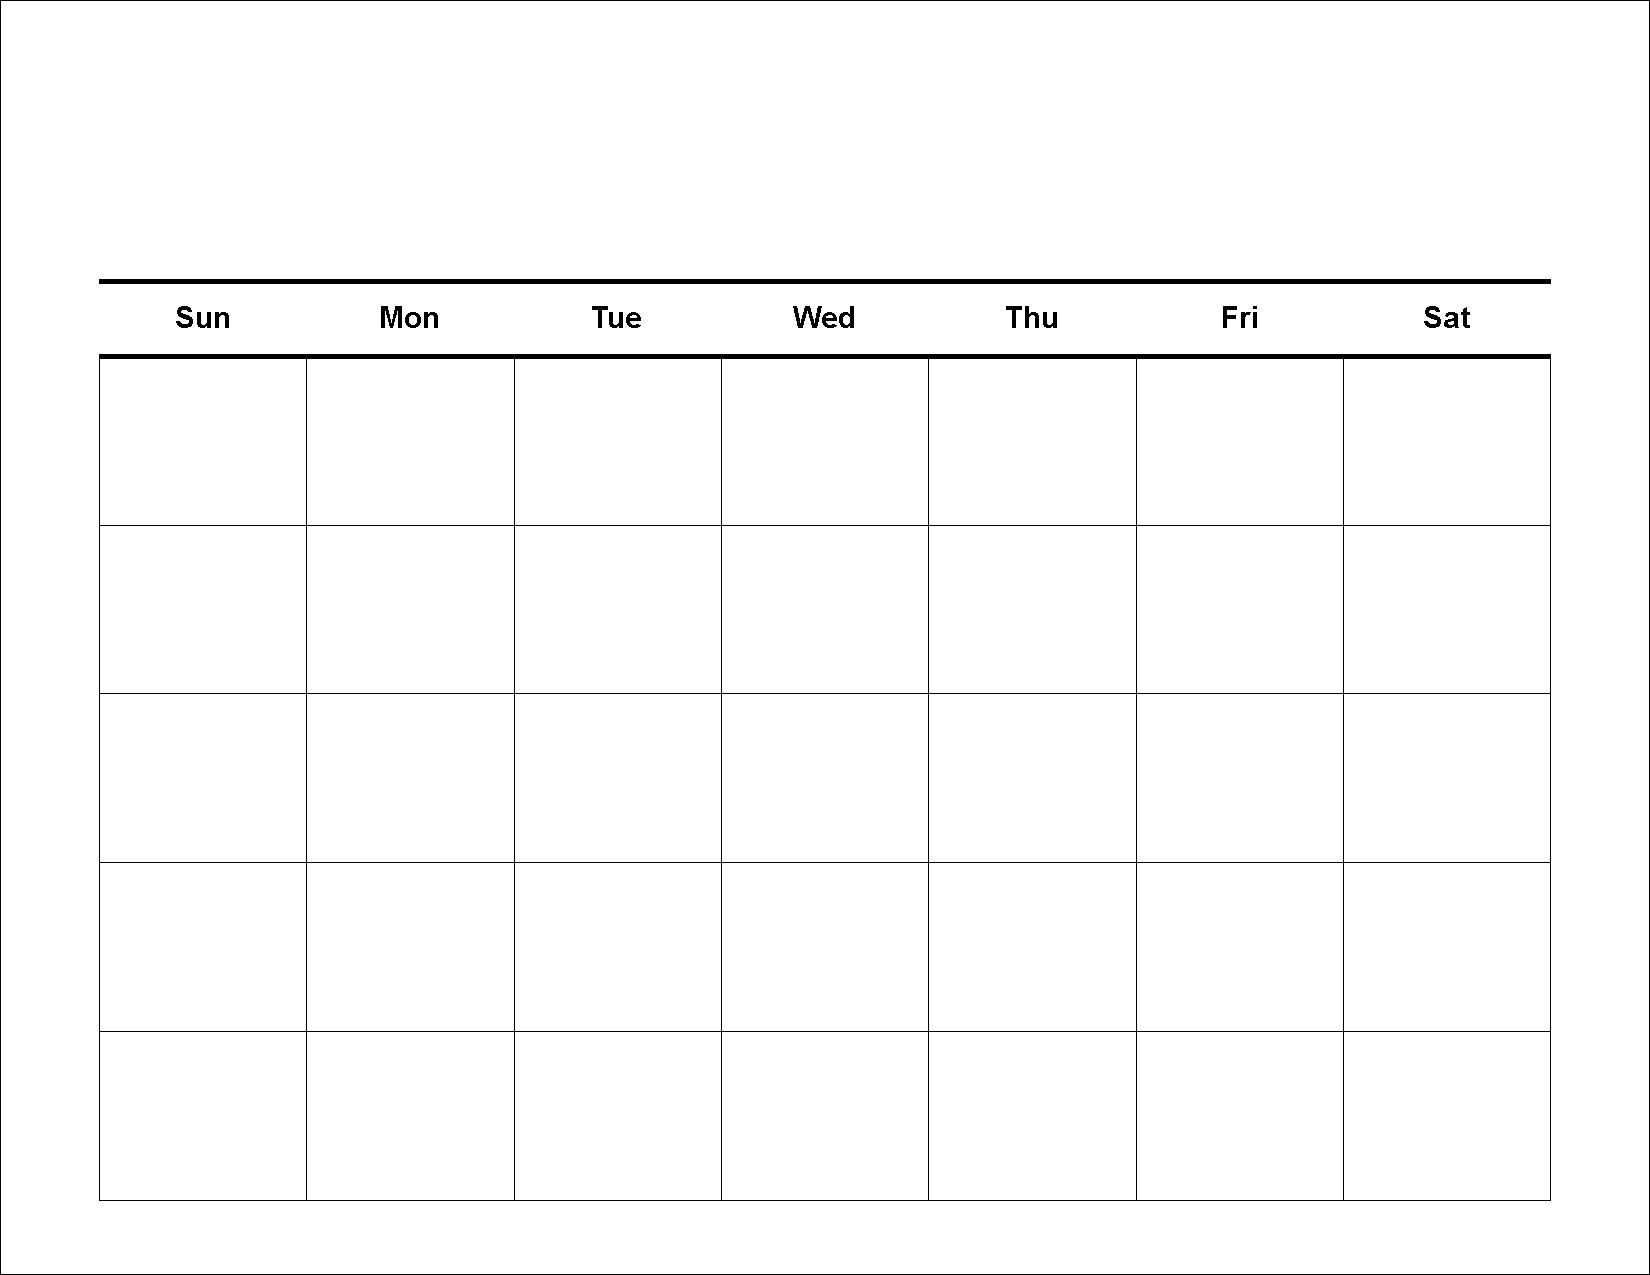 Week Calendar Template Meal Printable Microsoft Word Excel | Smorad with regard to Blank Two Week Calendar Template